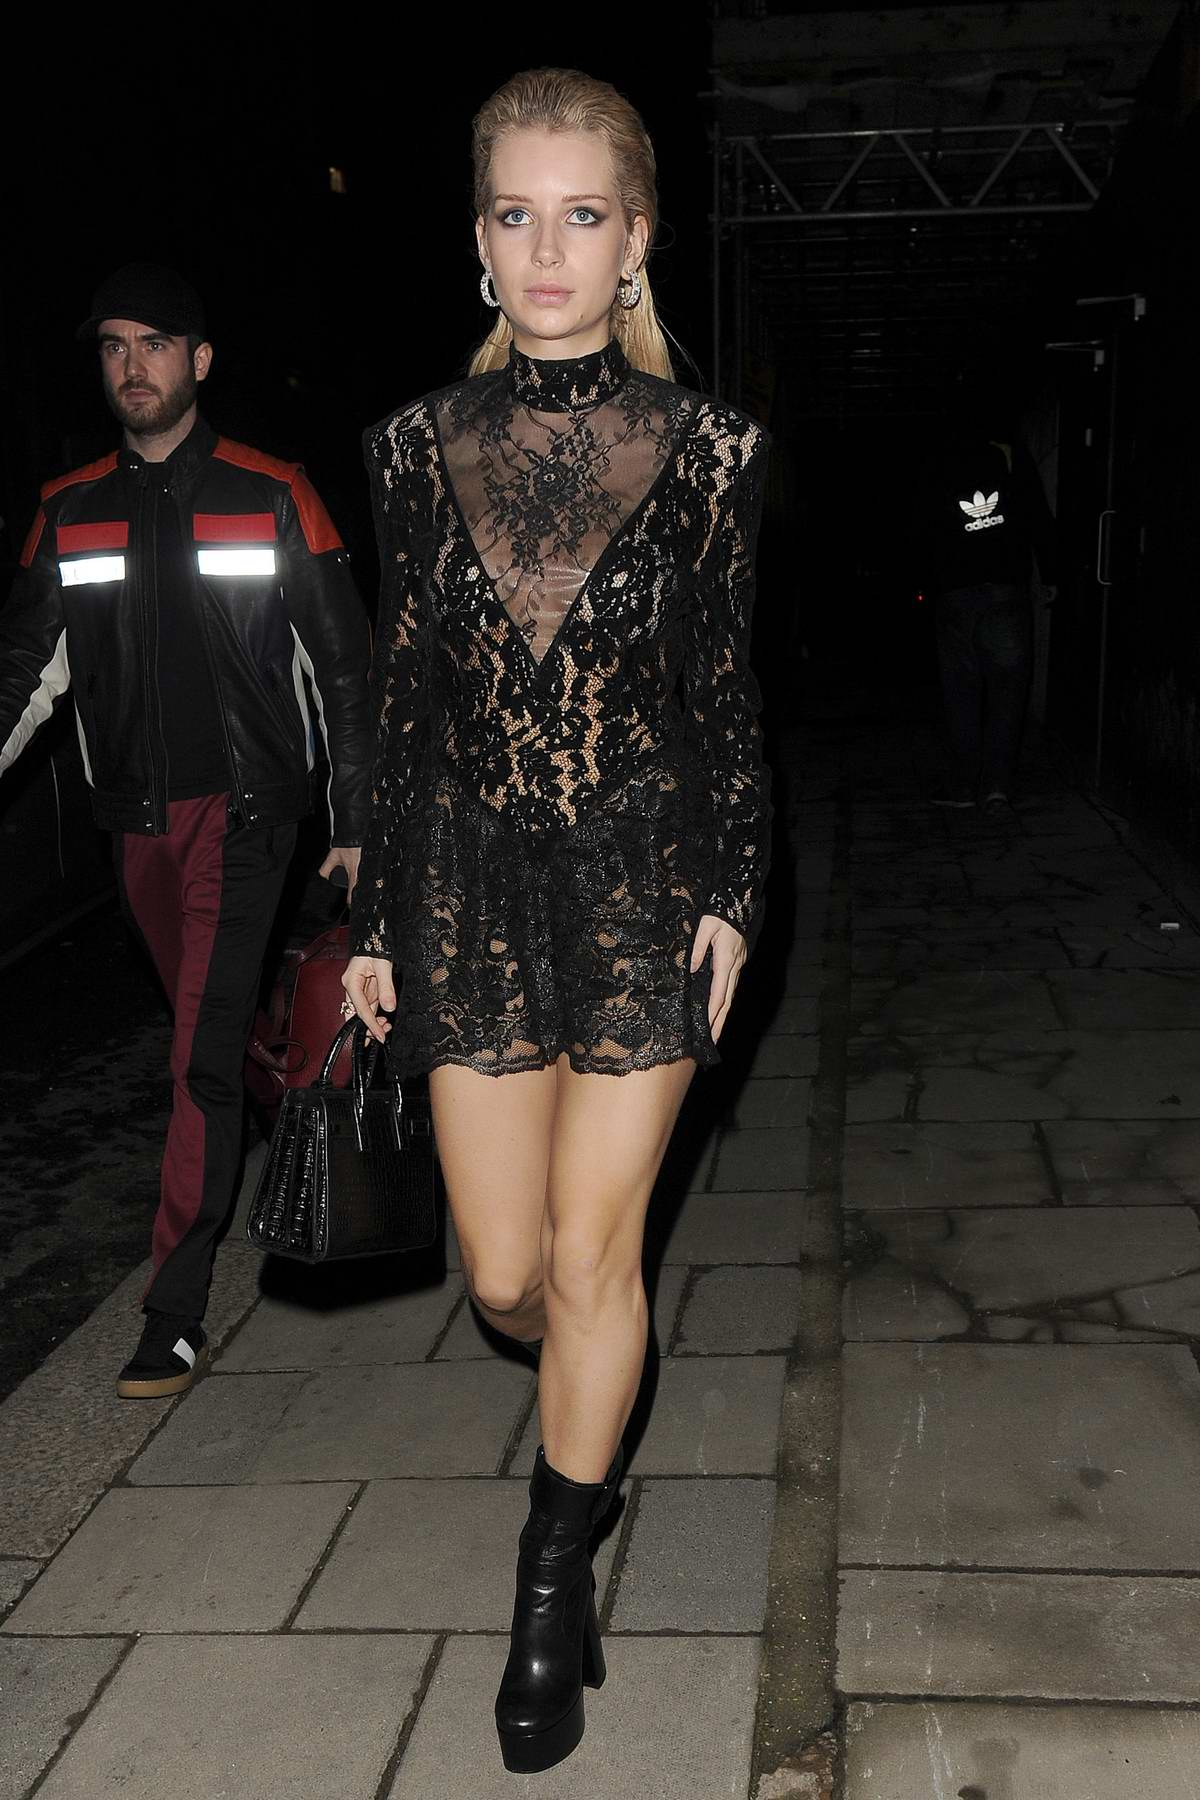 Lottie Moss arrives at the Love Magazine party in London, UK